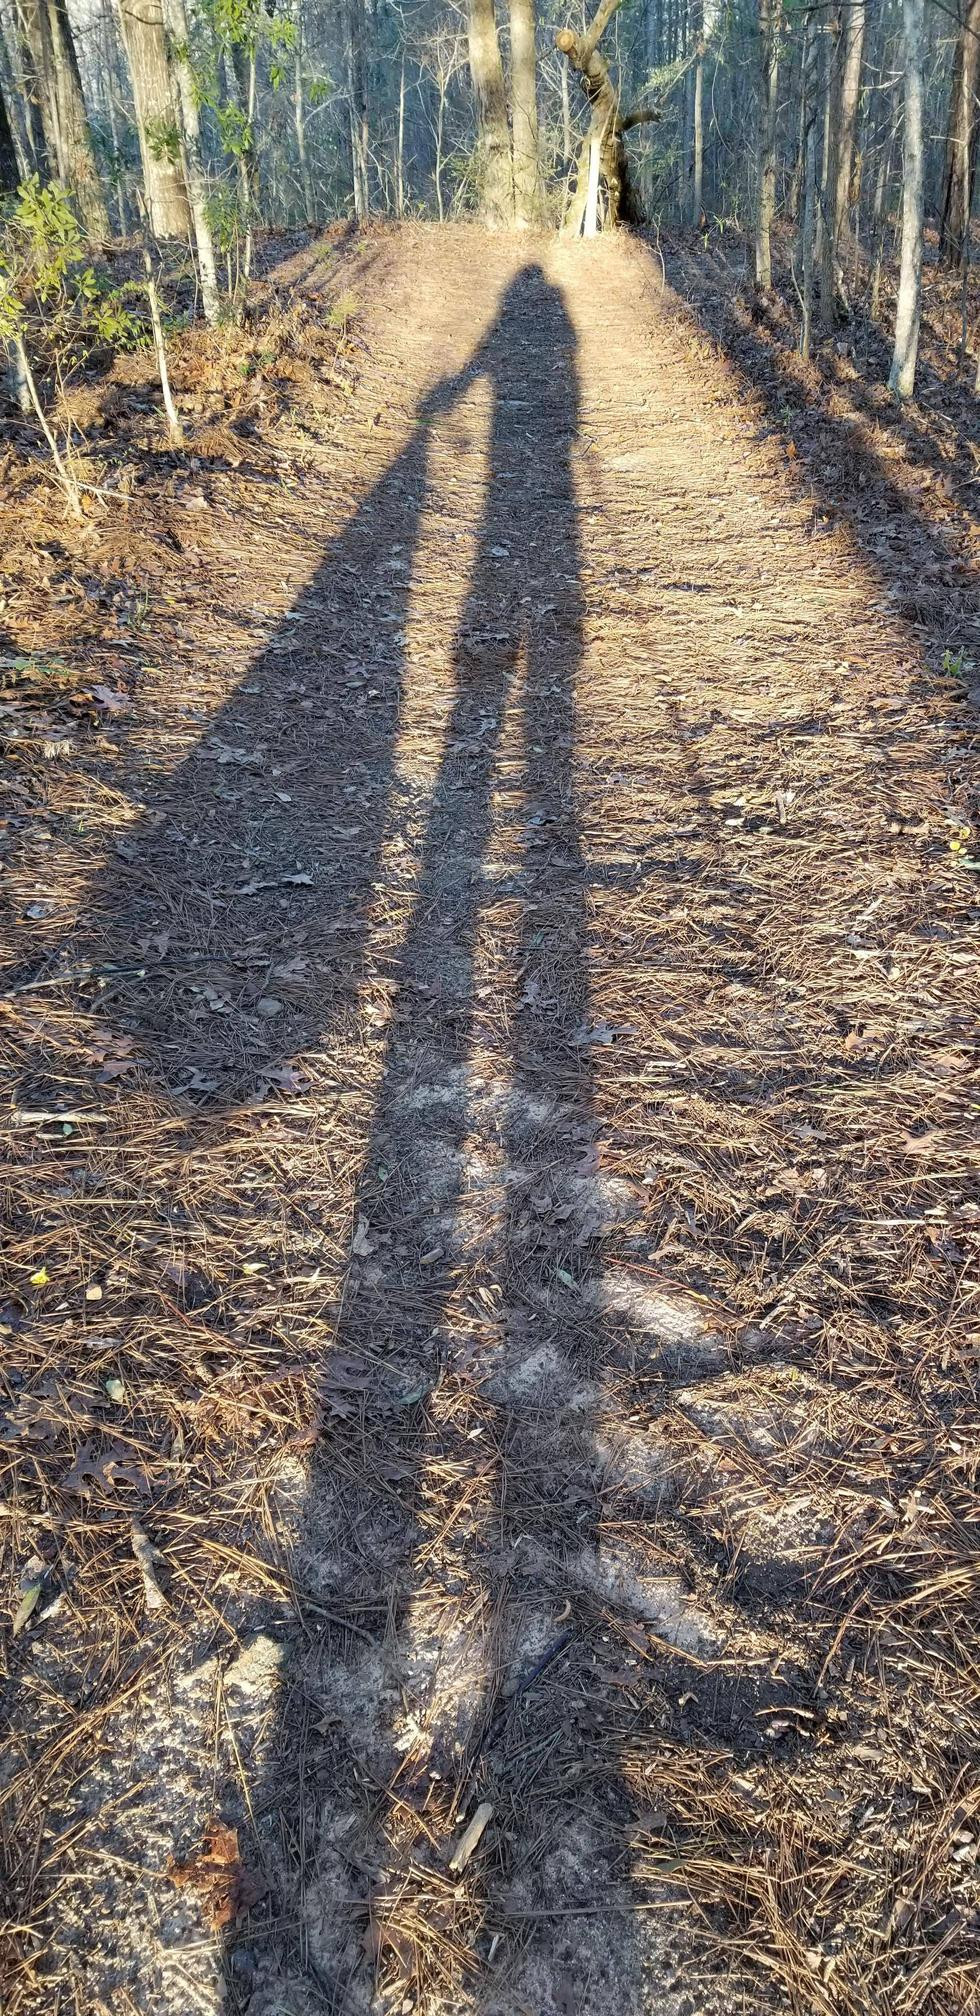 Young woman casts large, long shadow as she collects trash with a trashbag in hand along an Oregon hiking trail